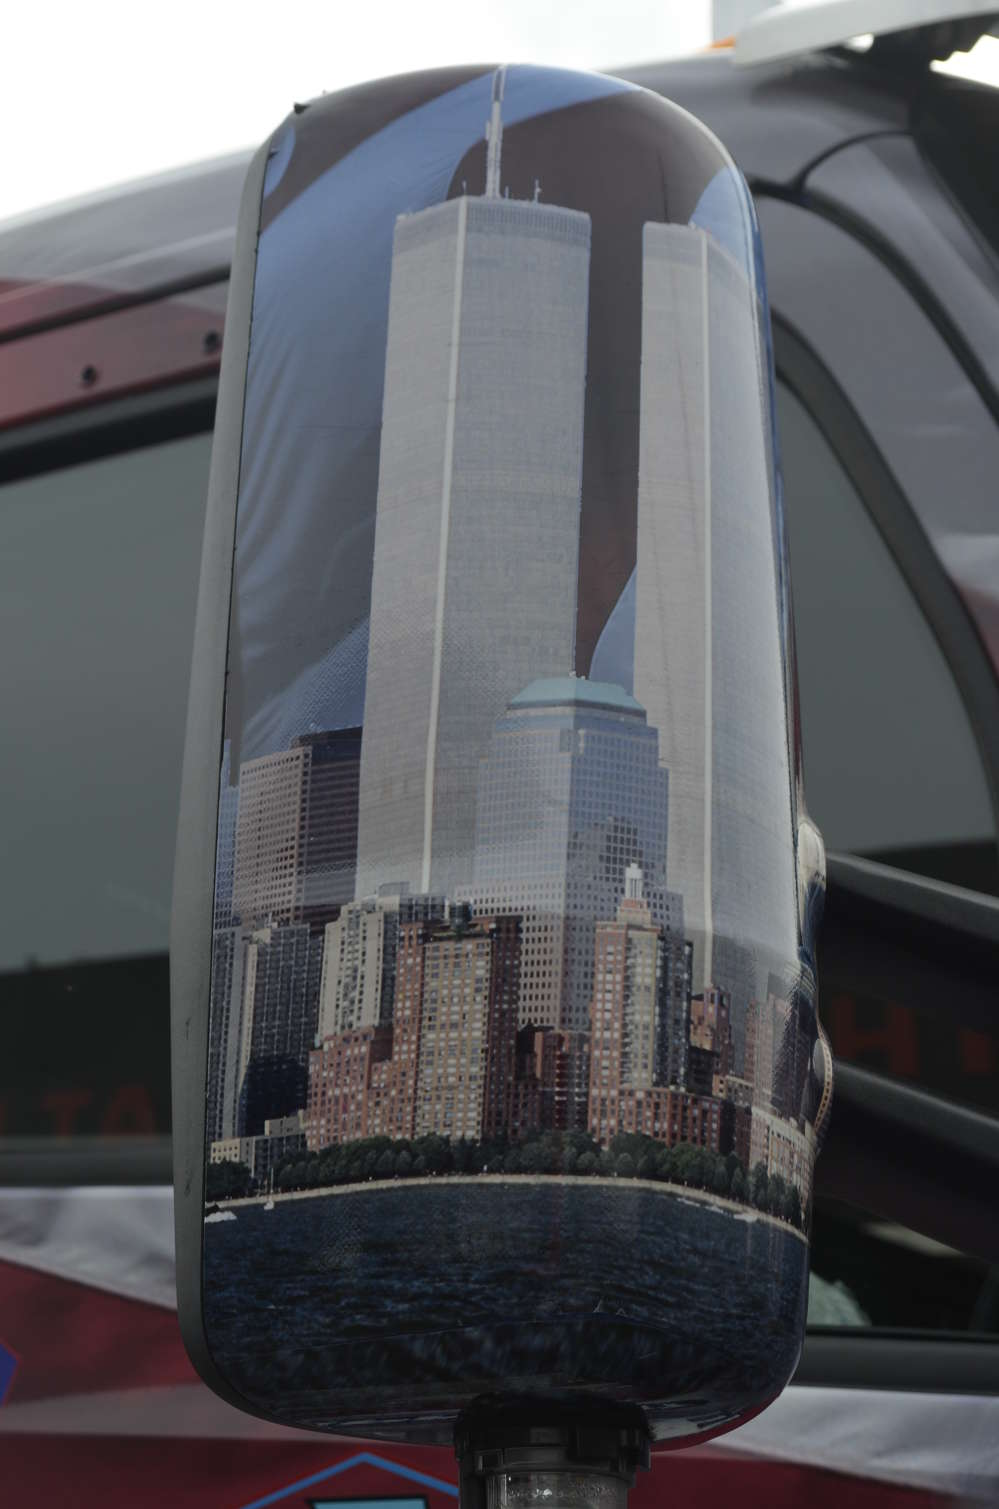 The images on the side mirrors recall what lower Manhattan's skyline looked like before the 9/11 attacks.